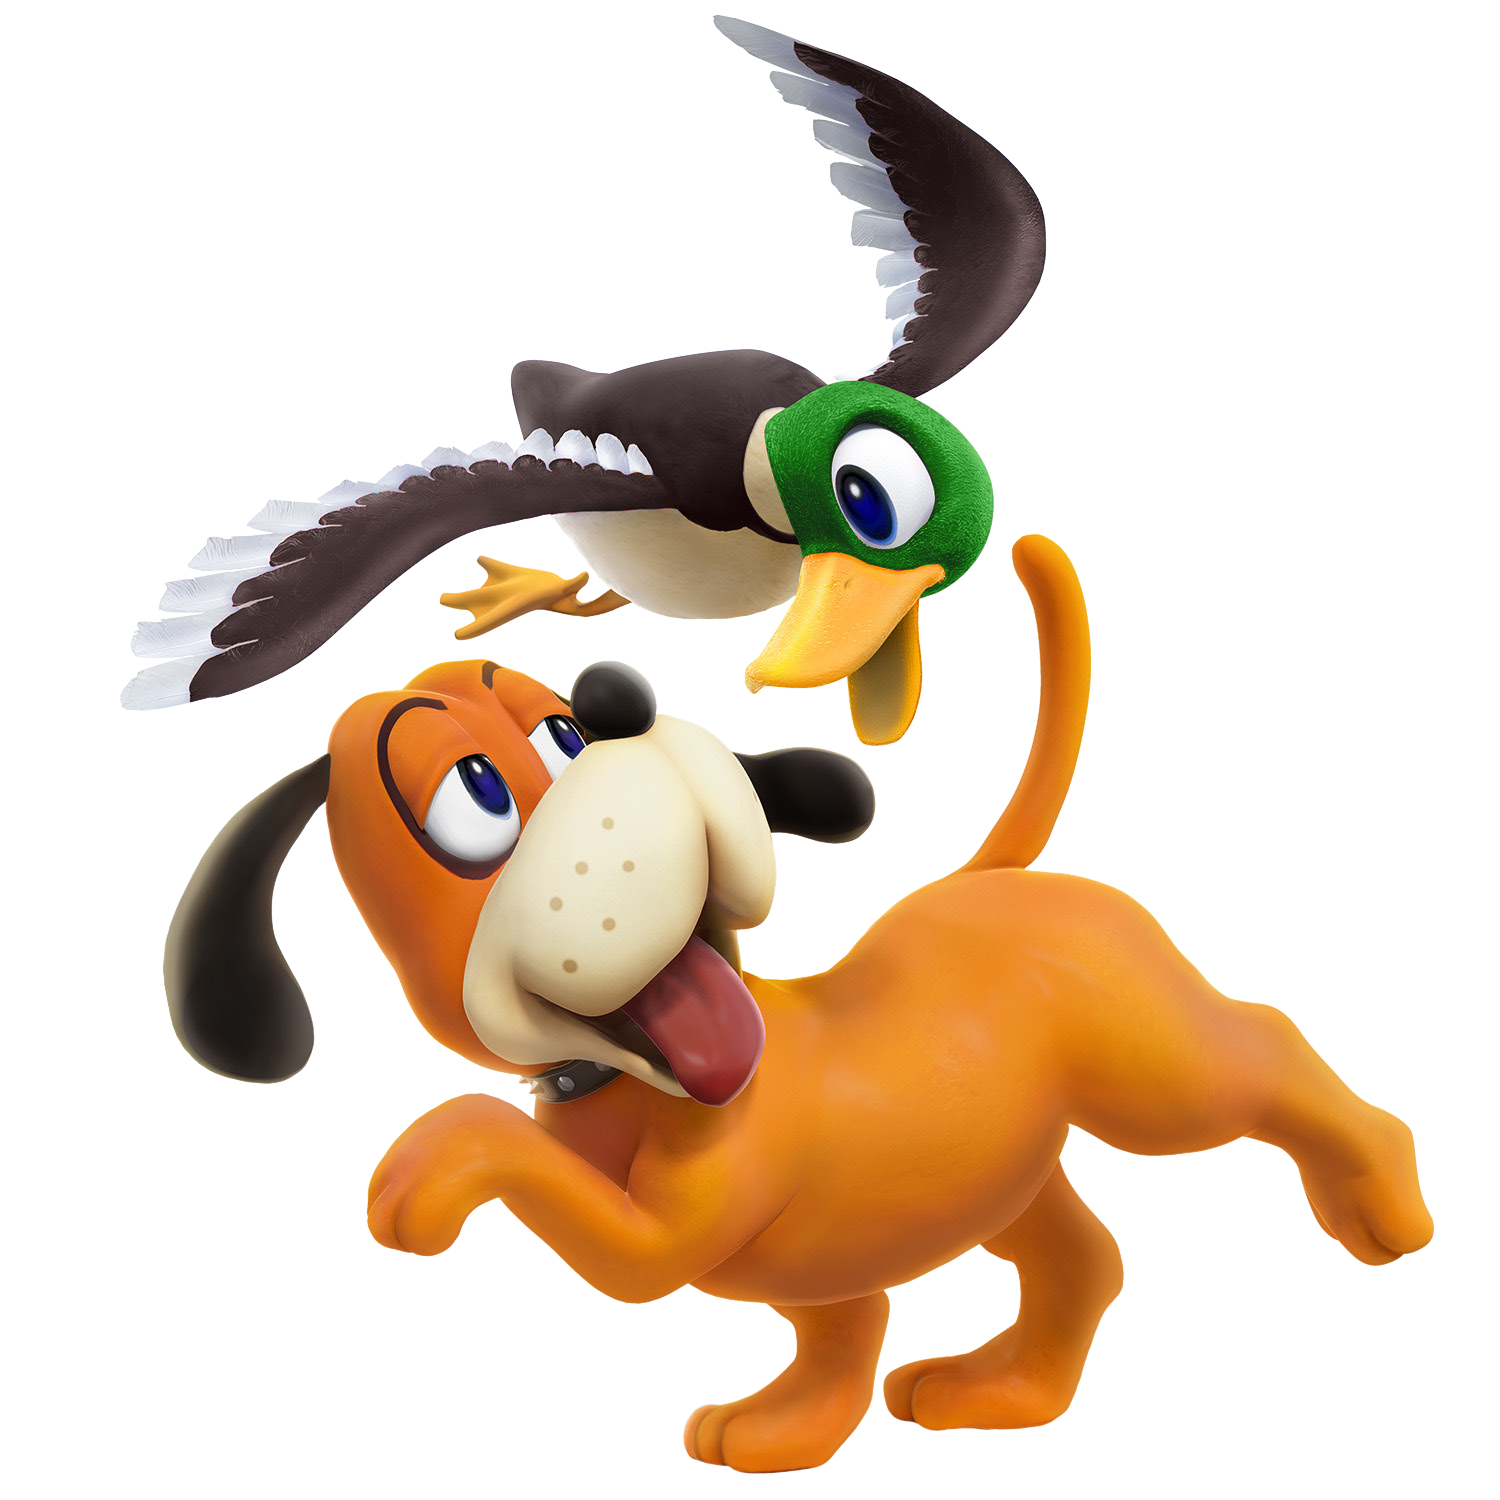 Earthquake clipart duck cover hold. Super smash bros crash